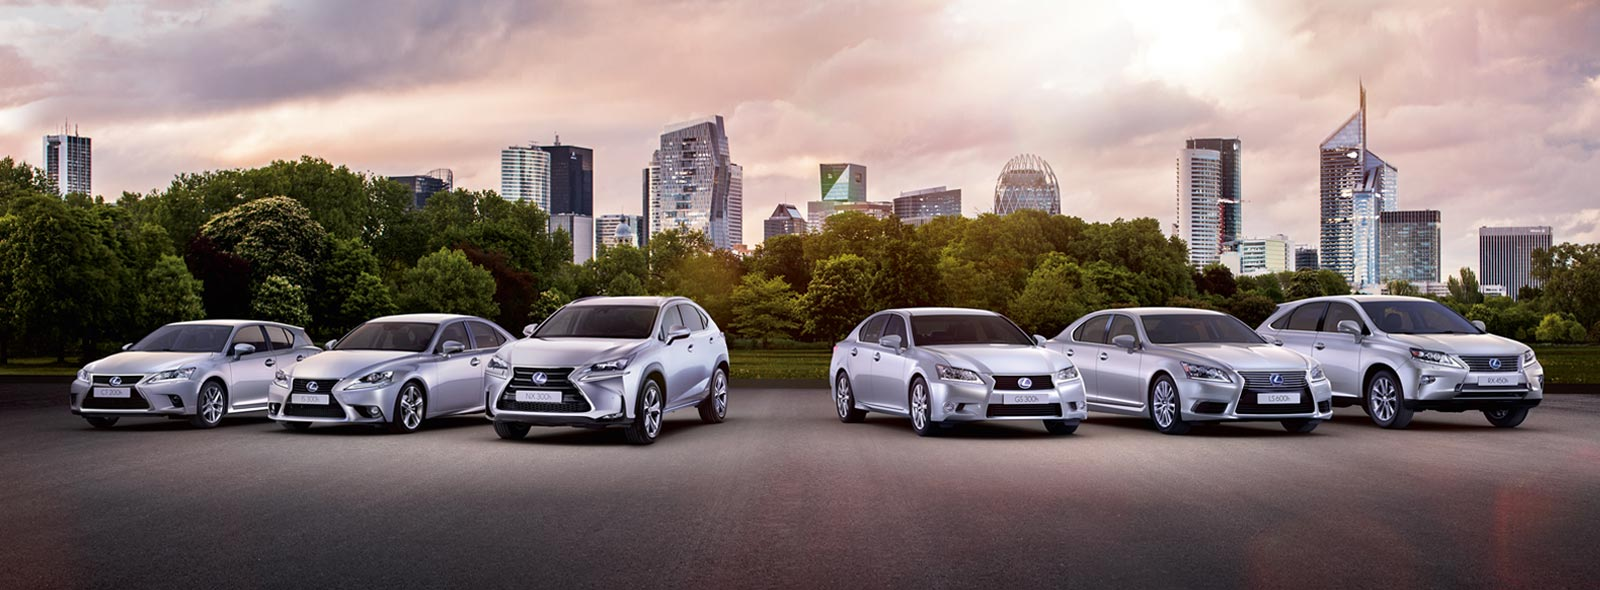 Lexus Hybrid Drive All Models